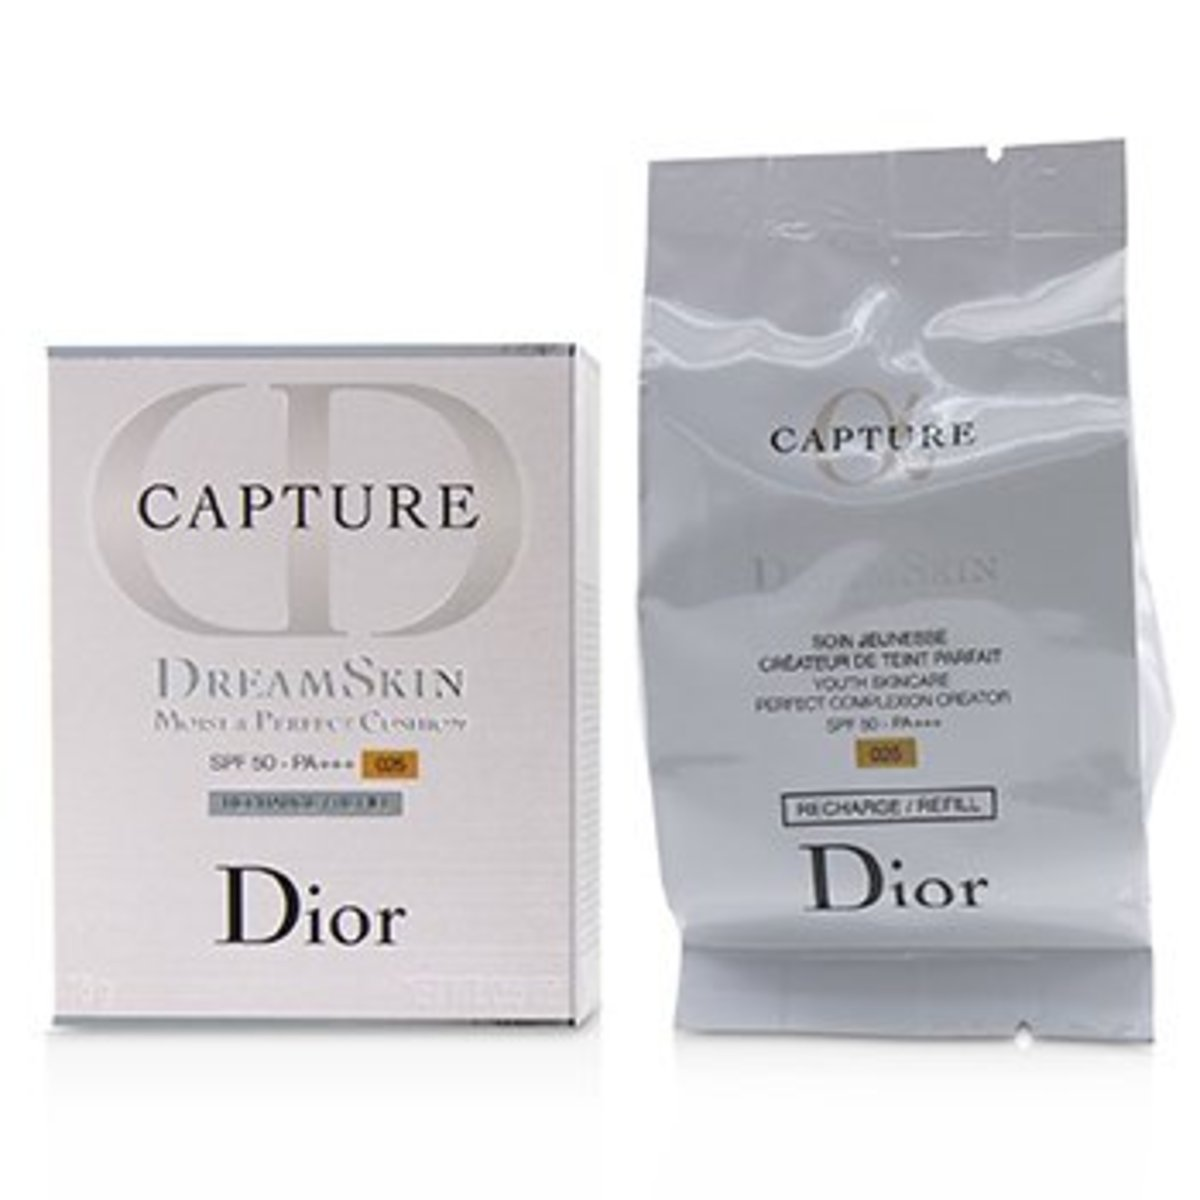 Capture Dreamskin Moist & Perfect Cushion SPF 50 Refill - # 025 (Soft Beige)  -[Parallel Import Prod